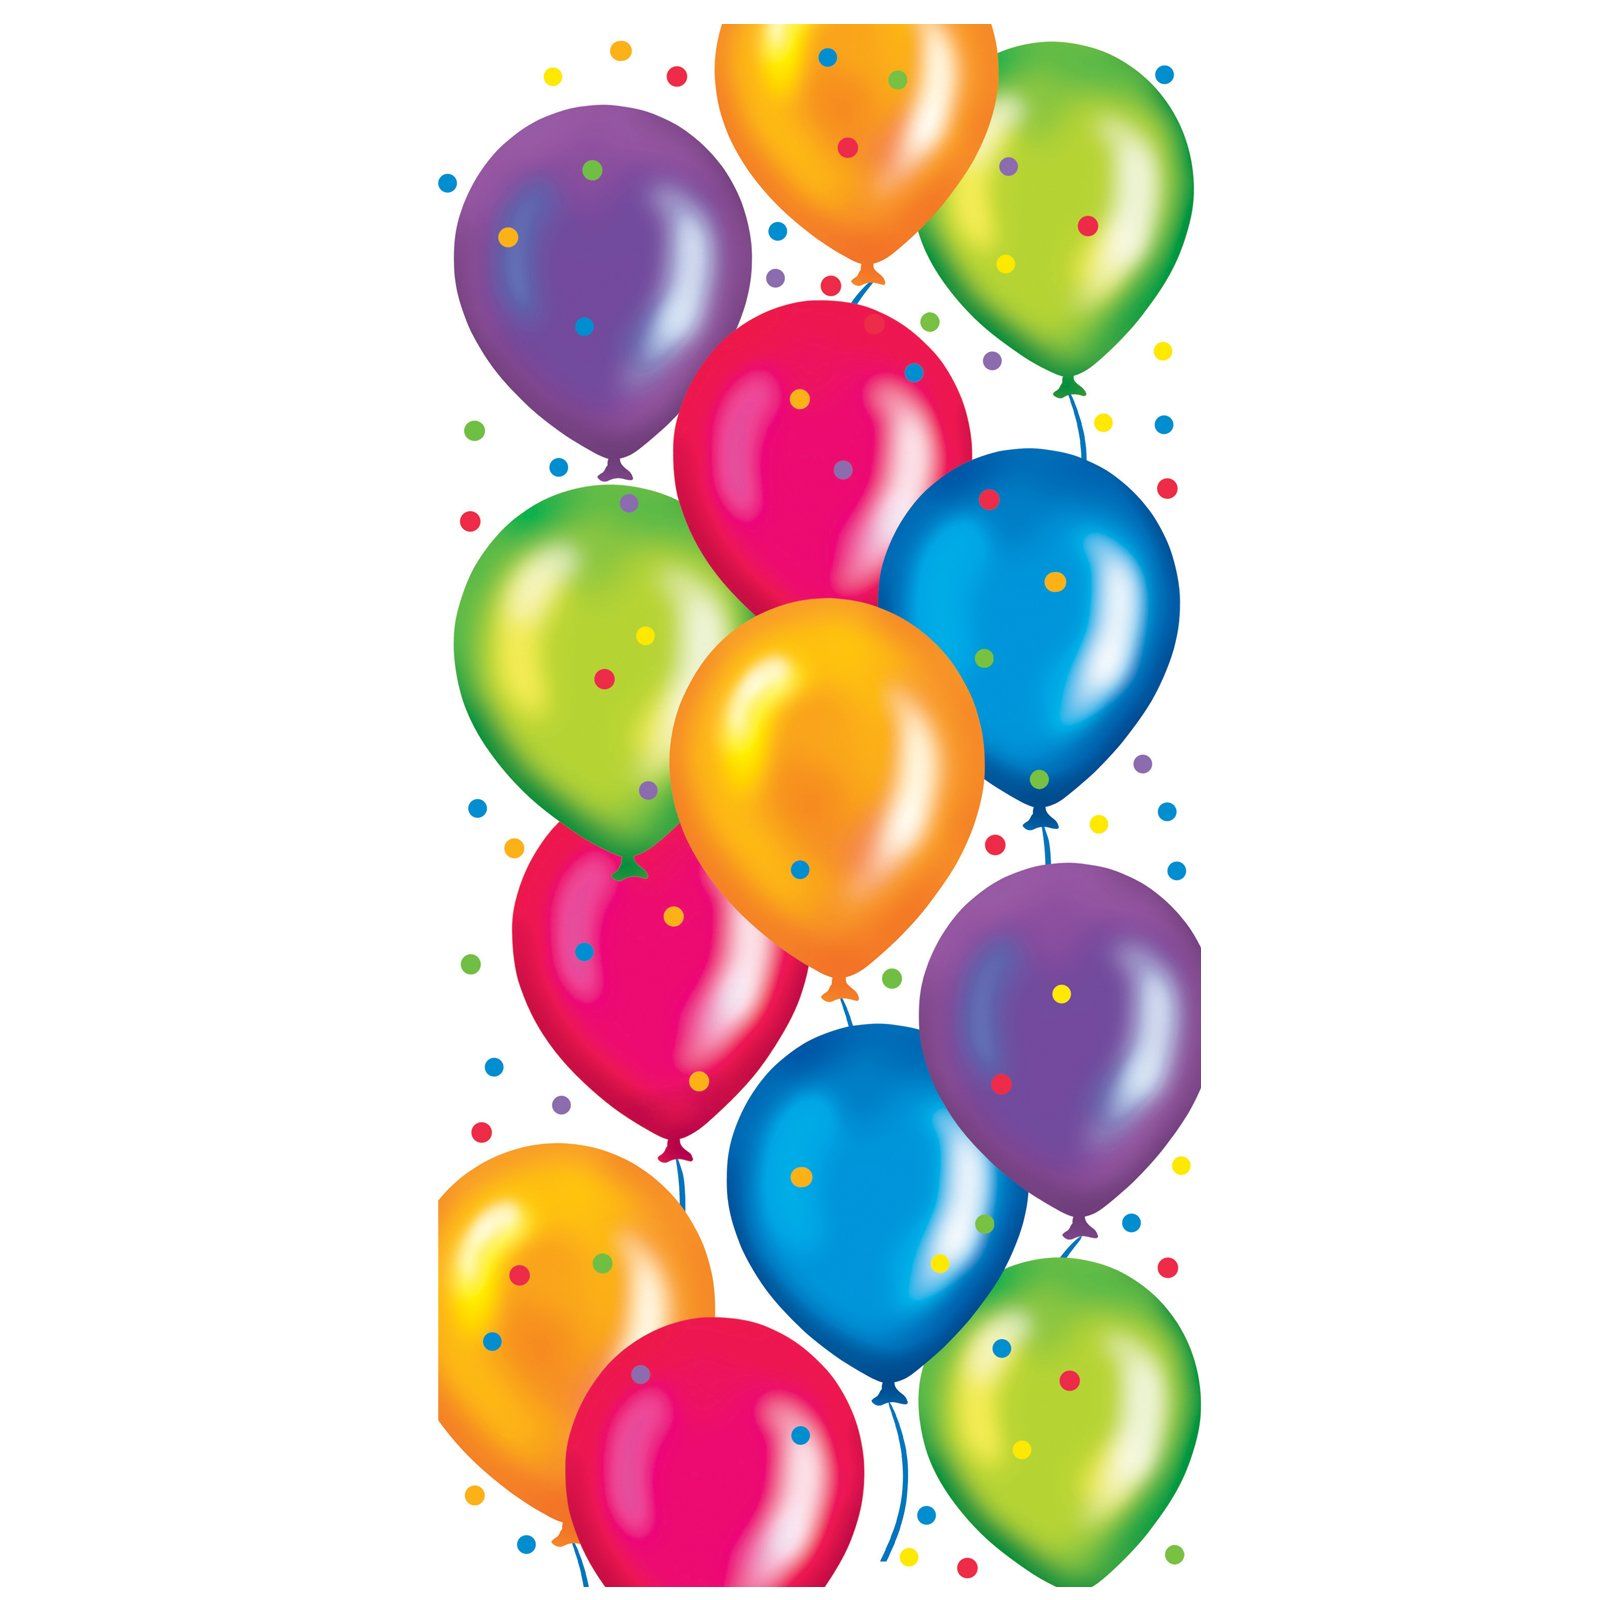 Clip art of a bouquet of colorful balloons for a birthday.